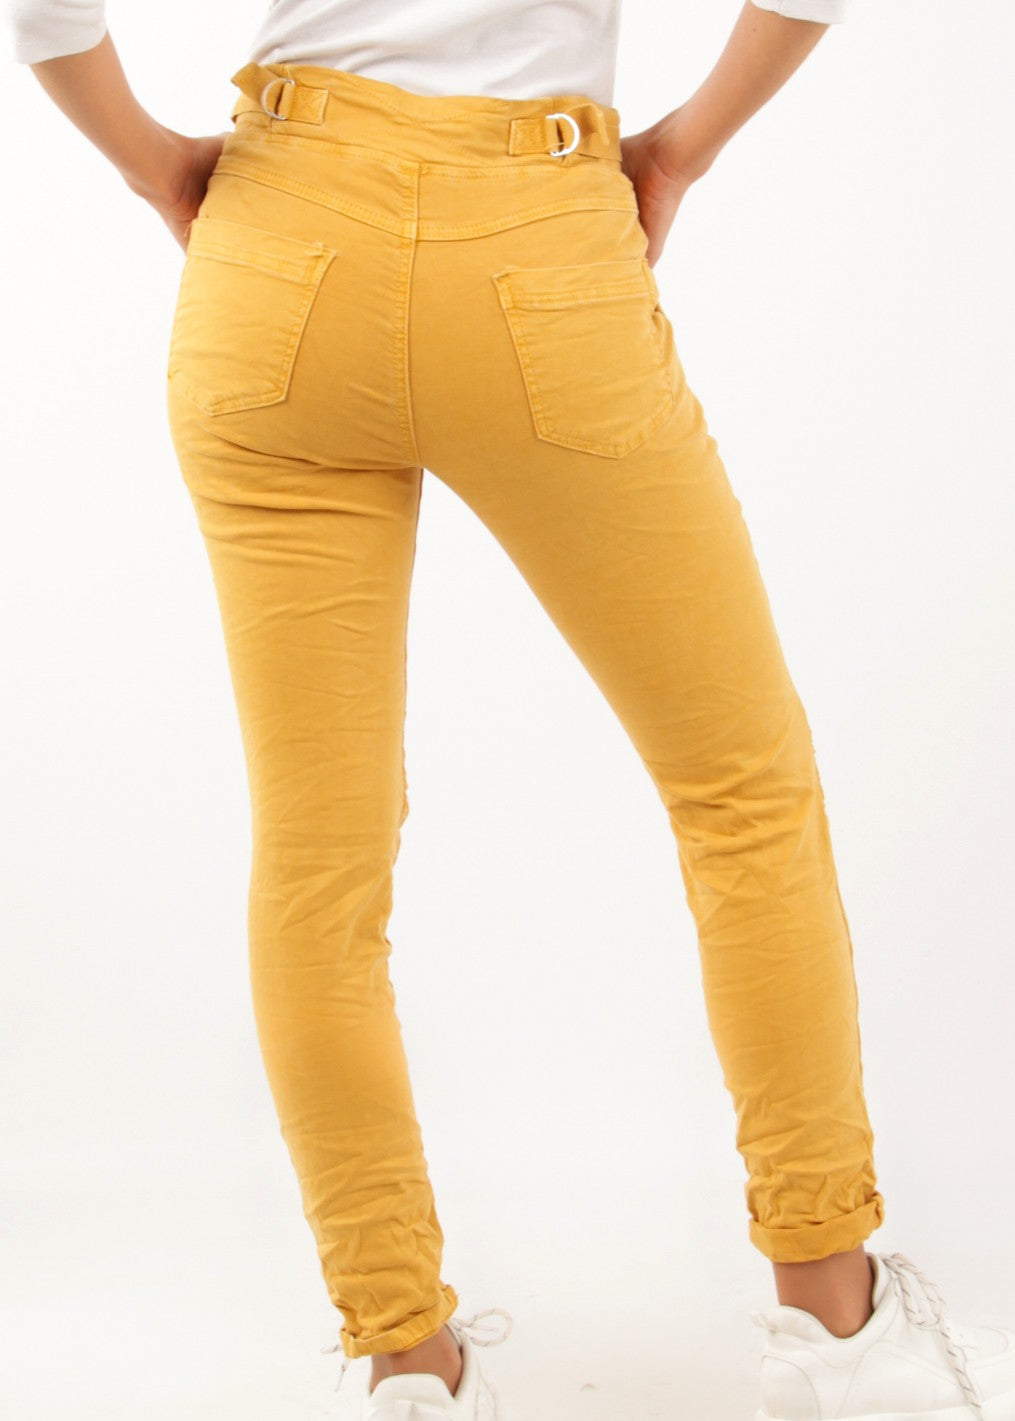 SOFIA - Pull-on Jeans - Mango